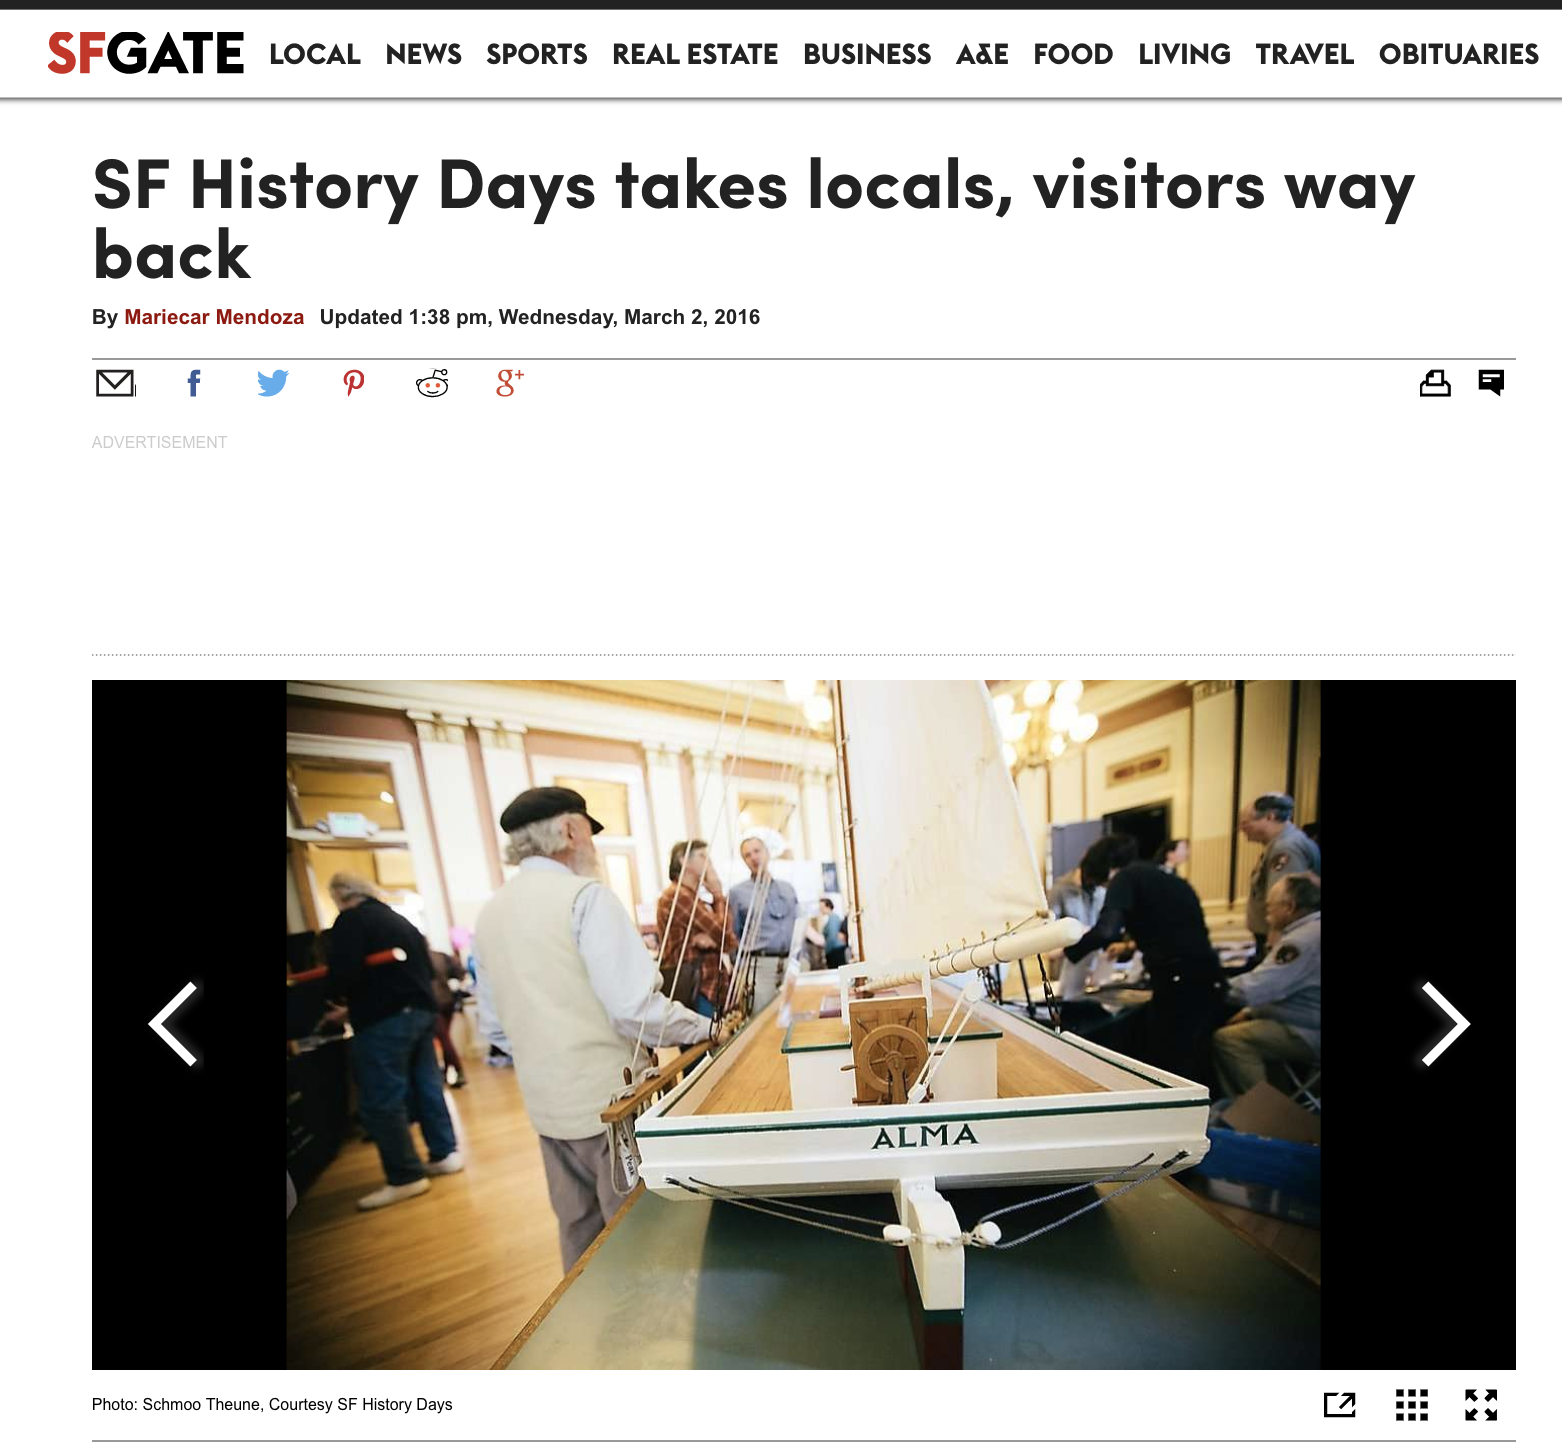 SF_History_Days_takes_locals__visitors_way_back_-_SFGate.png